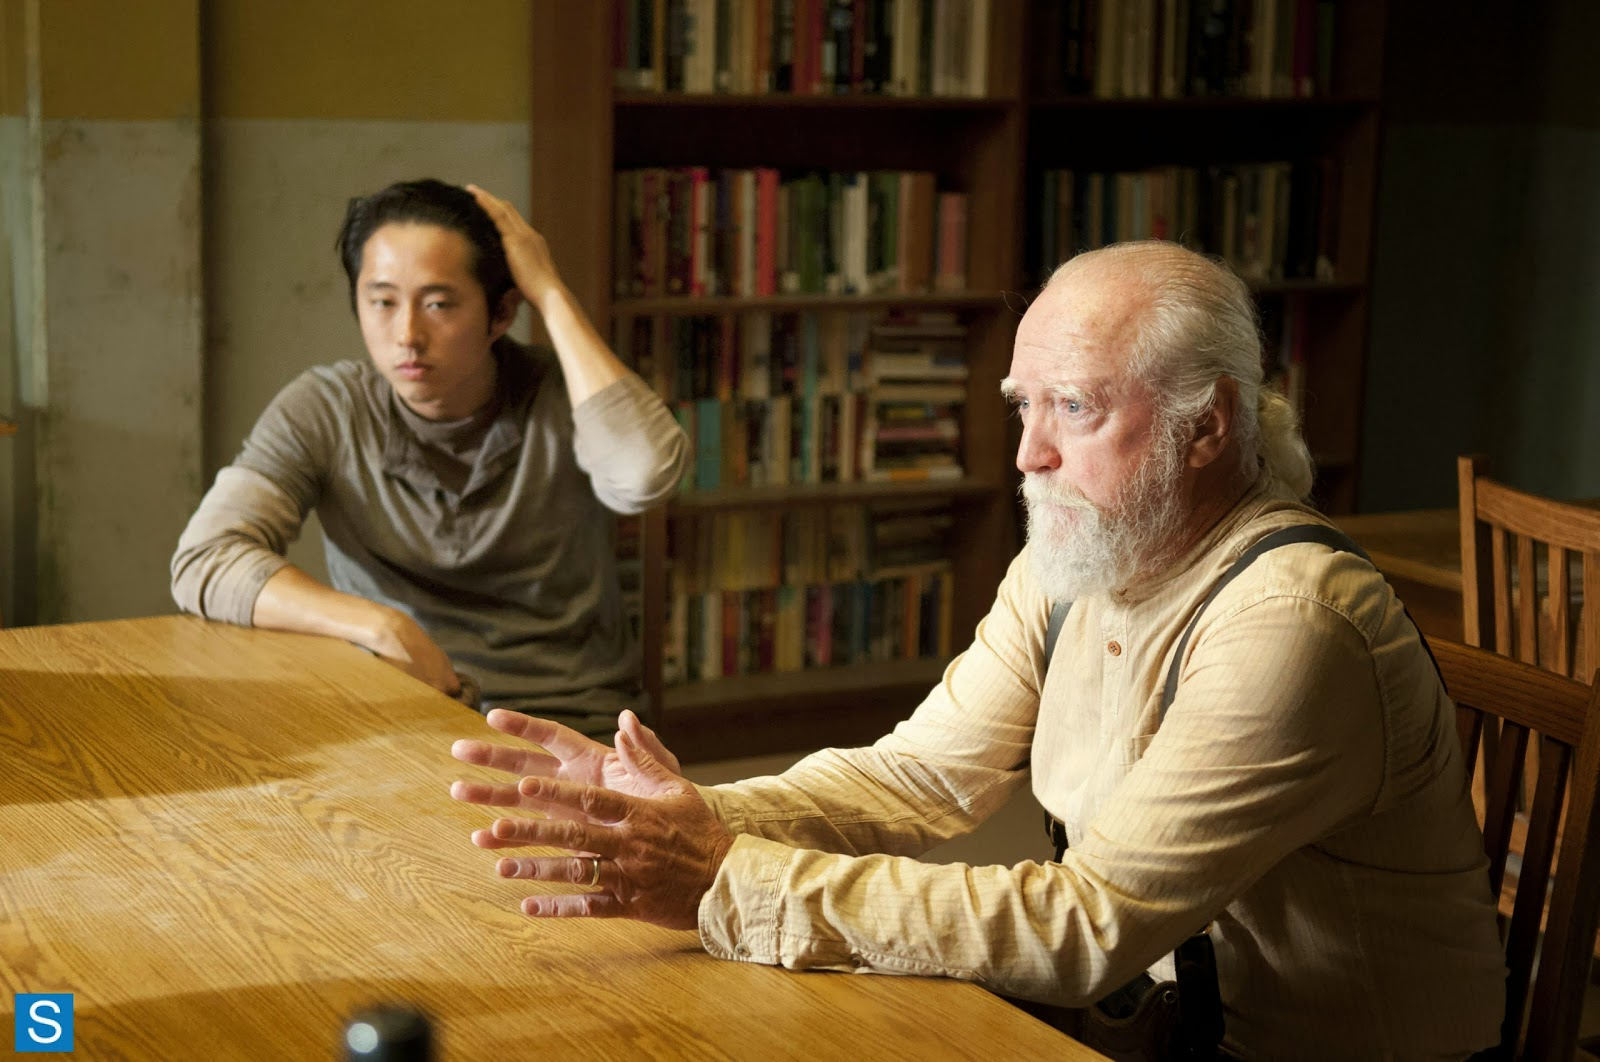 Glenn y Hershel en el Consejo en The Walking Dead 4x03 Isolation